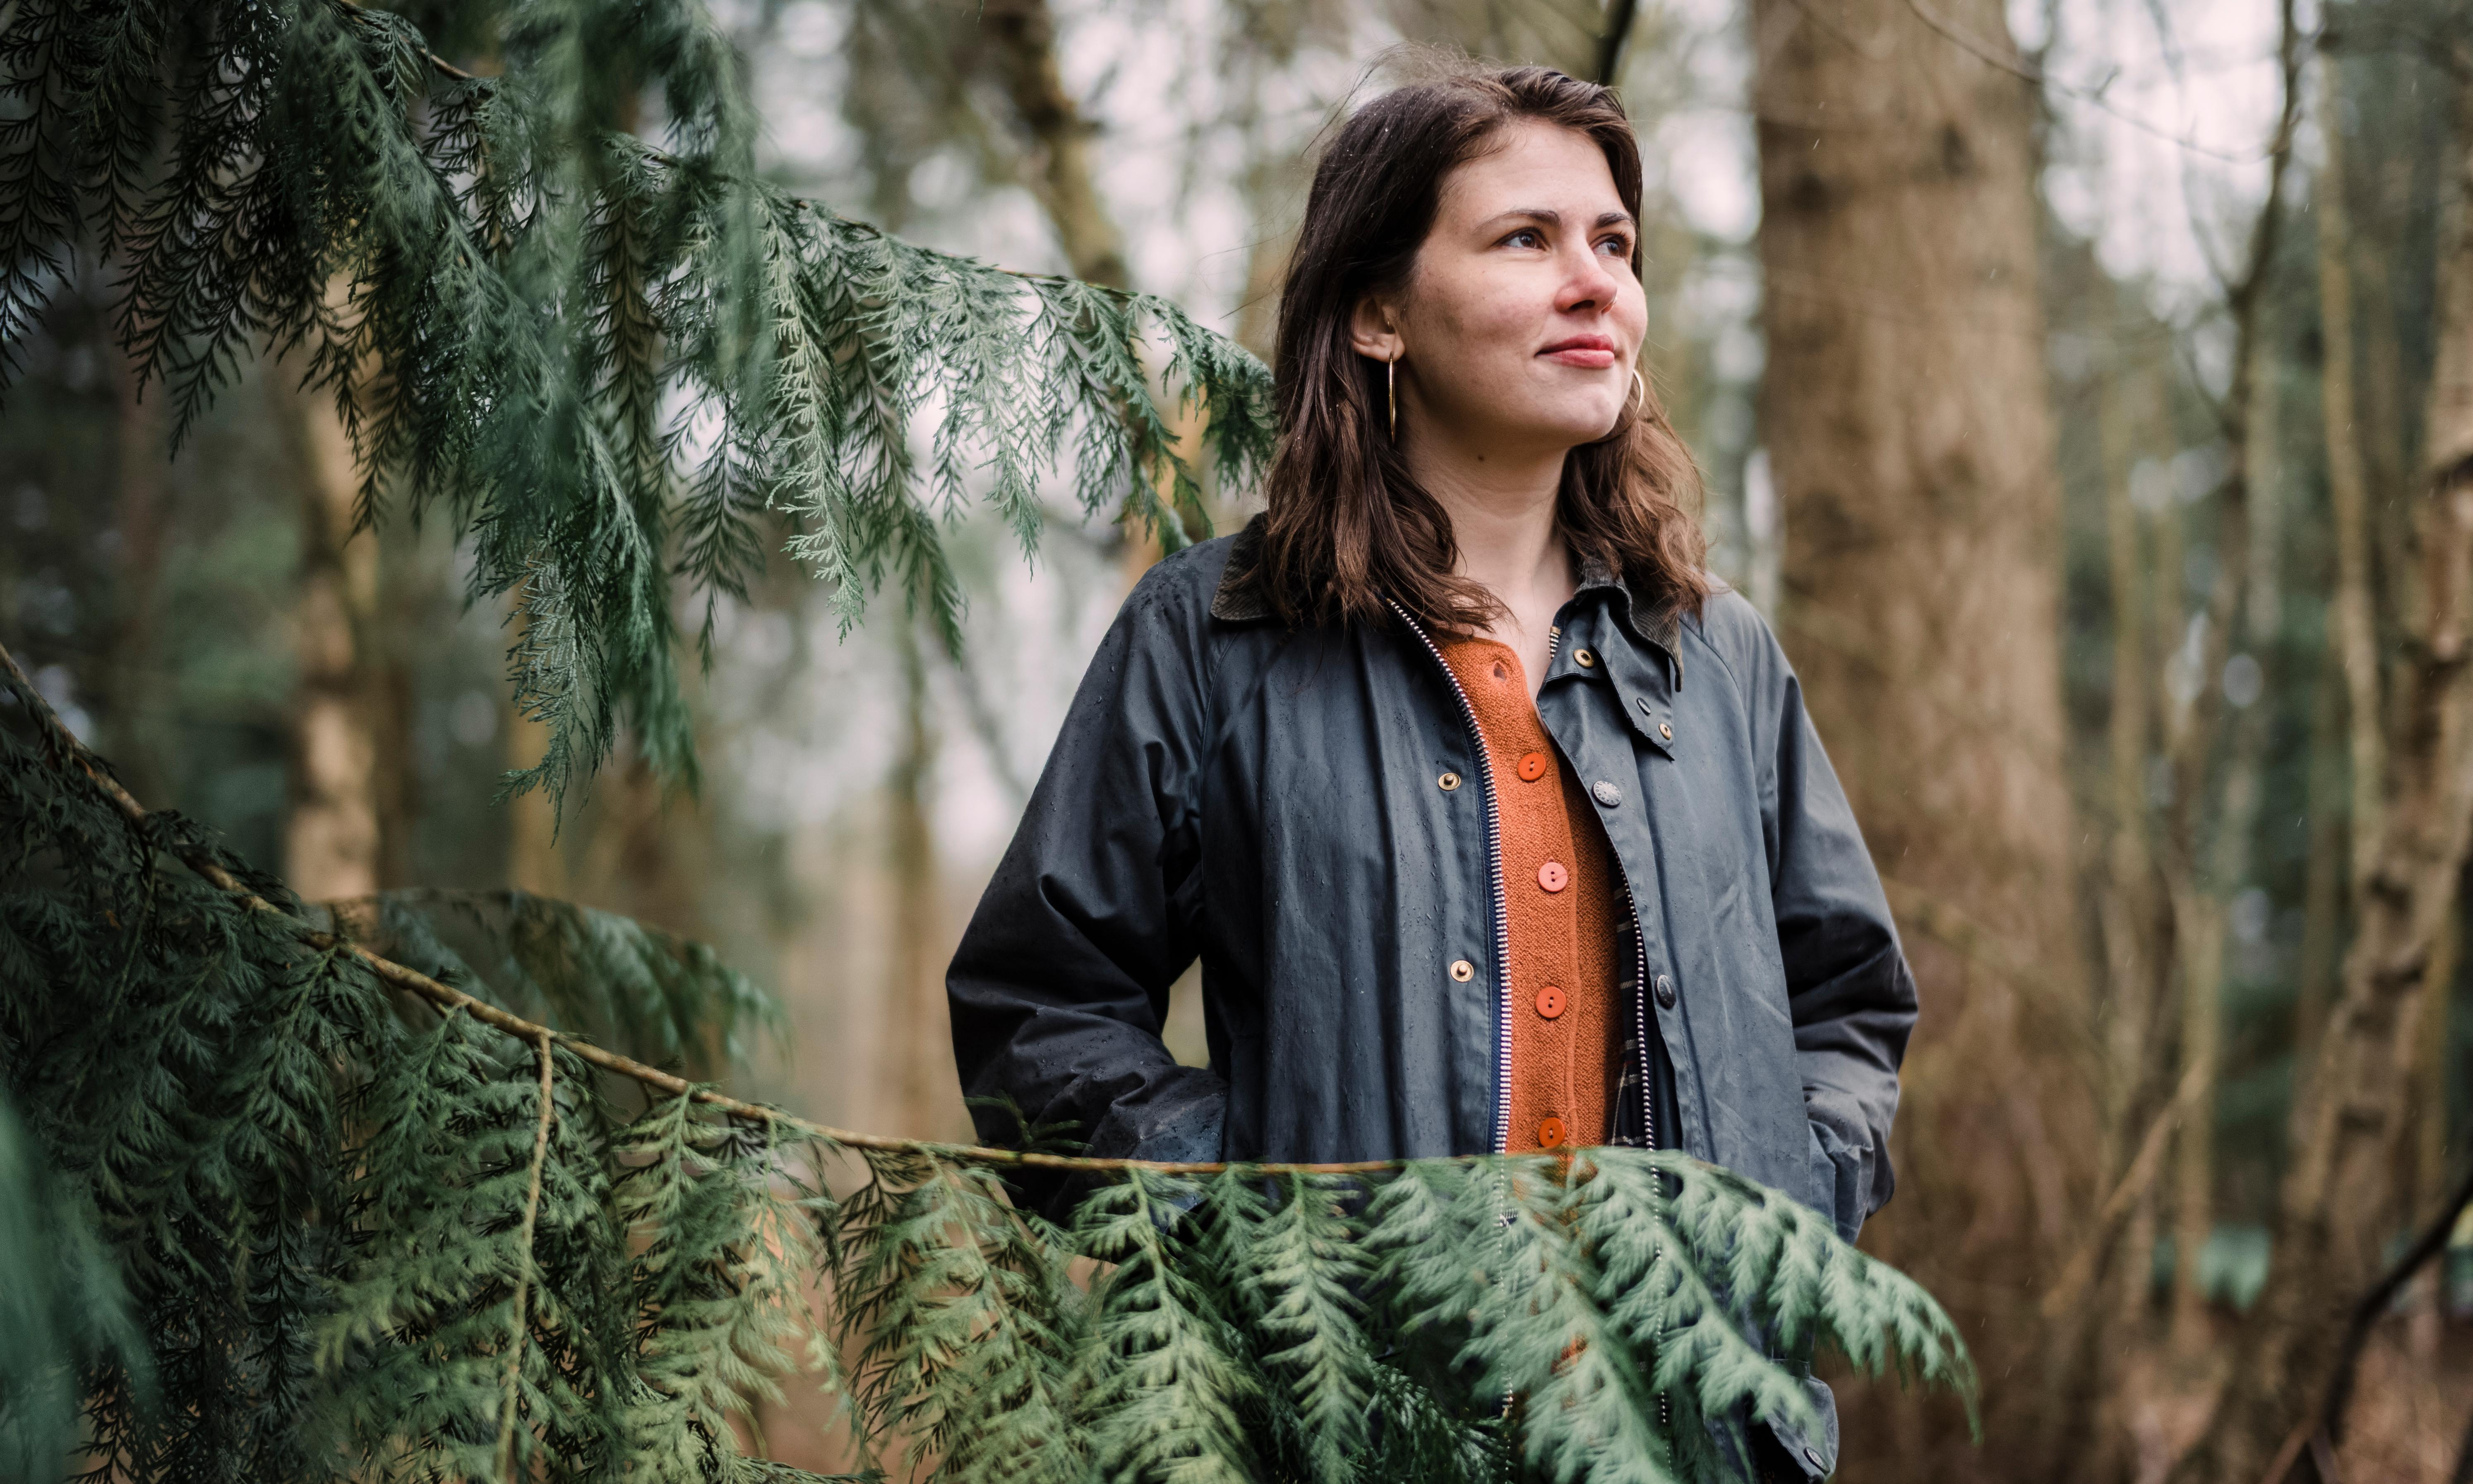 Take a leaf out of her book: woodland poet's search for inspiration in the trees